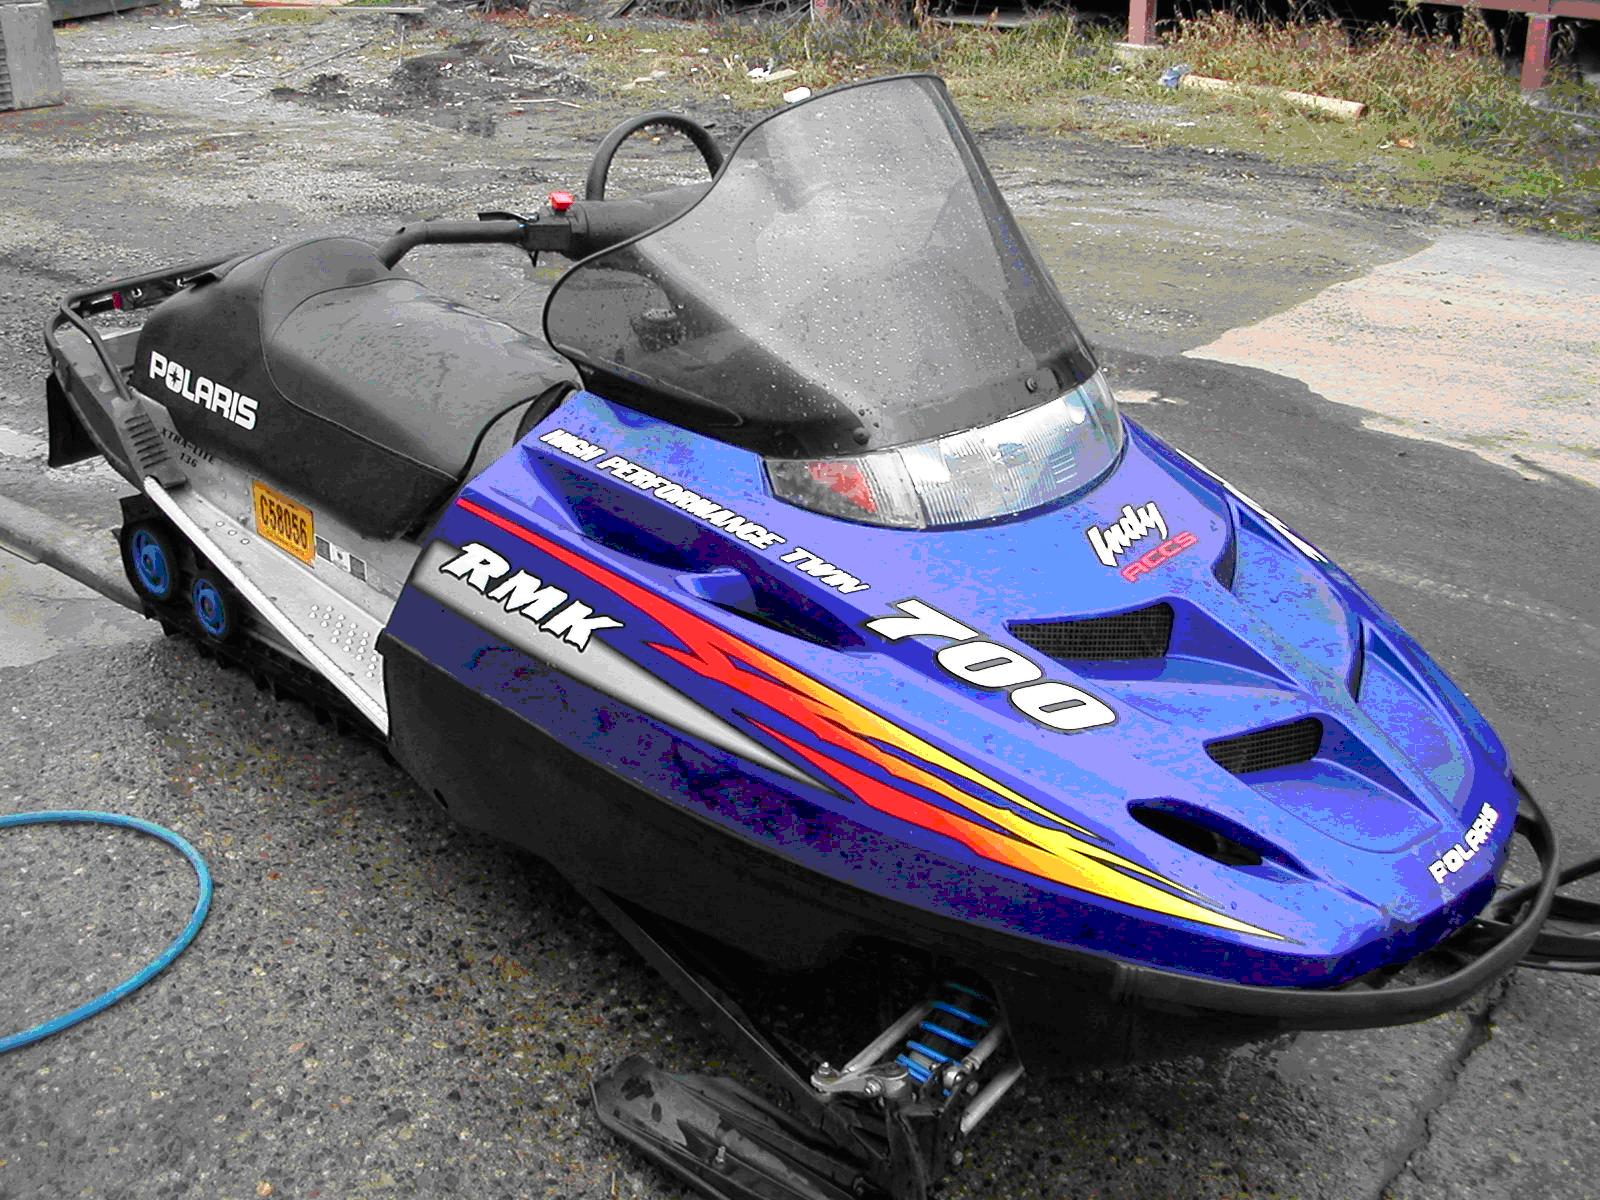 Wiring Diagram In Addition 2001 Polaris Snowmobile Wiring Diagrams In